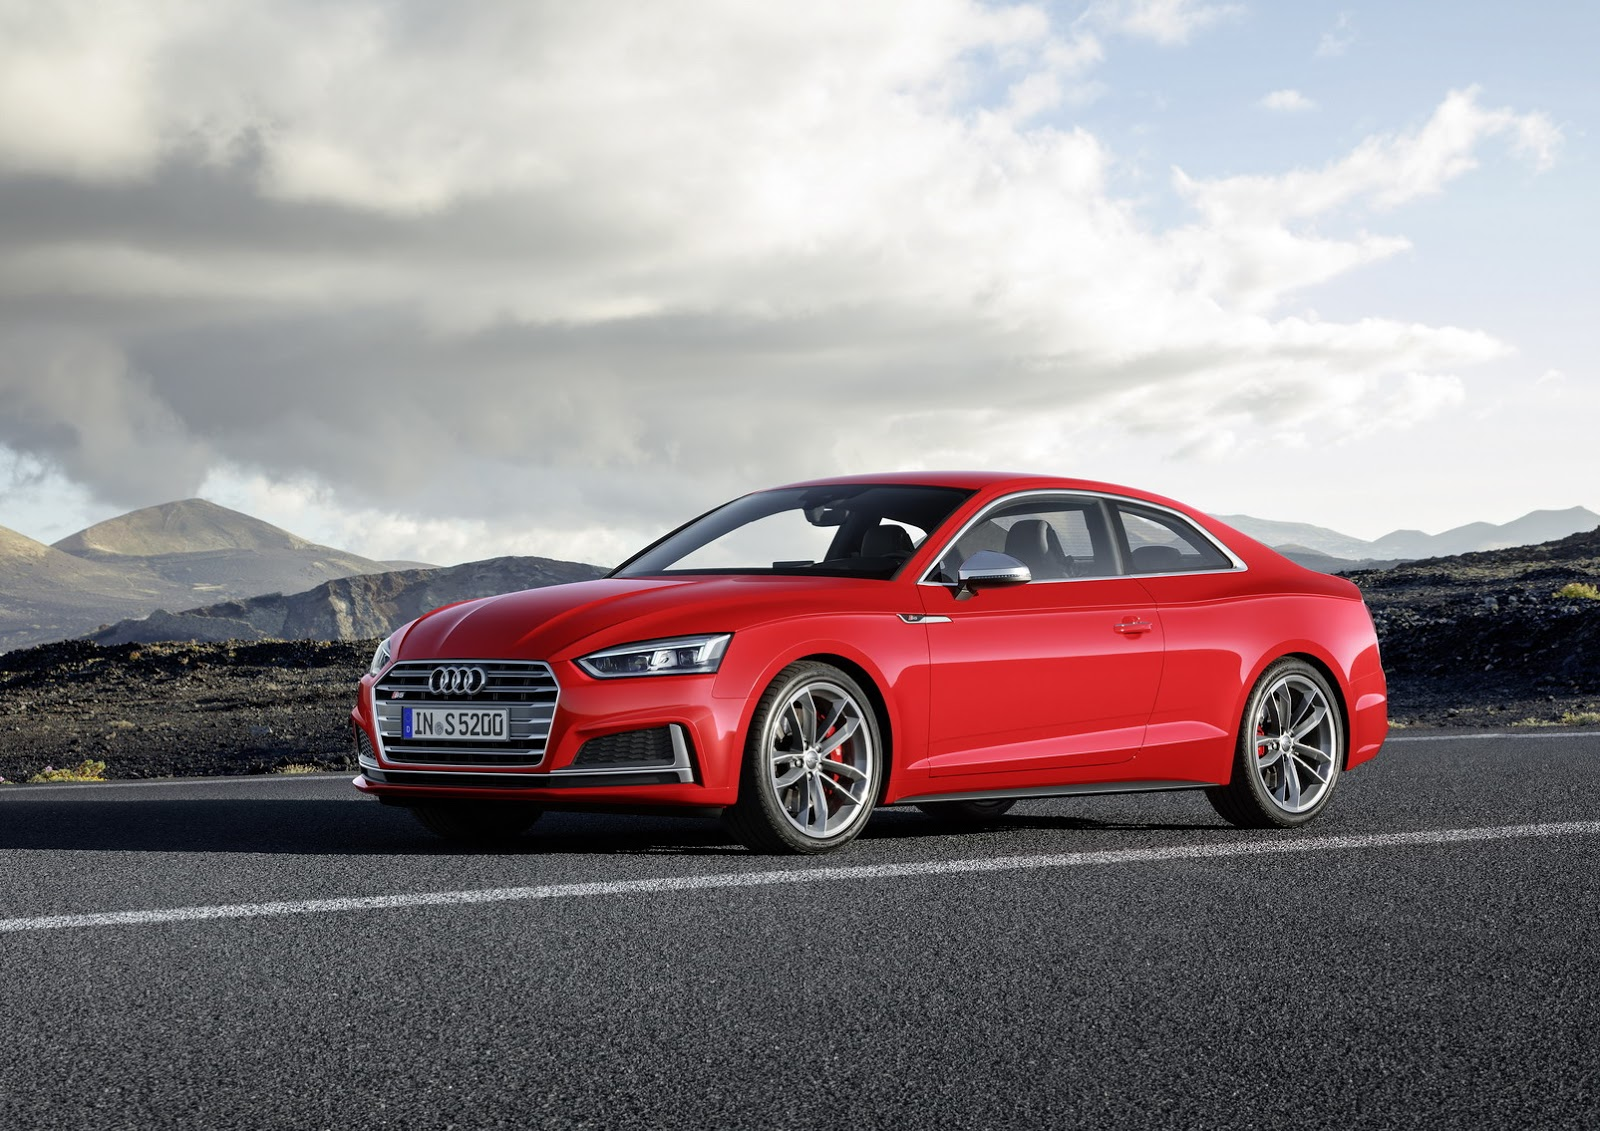 2019 Audi A5 Coupe photo - 4